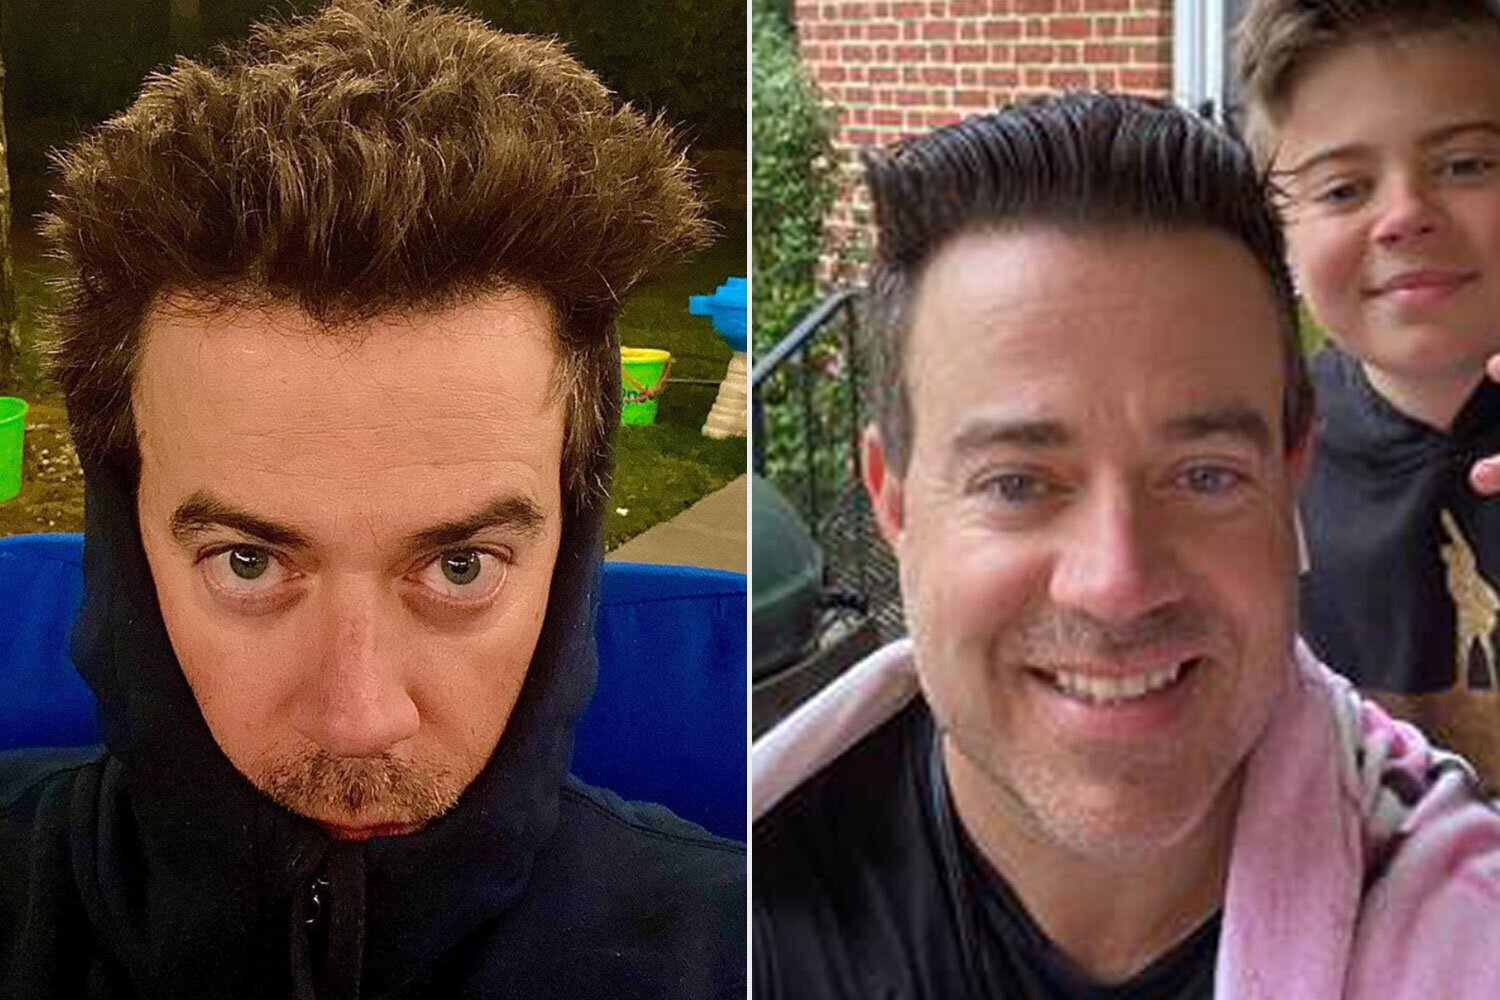 Carson Daly Cuts His Own Hair From Home On Live Television During